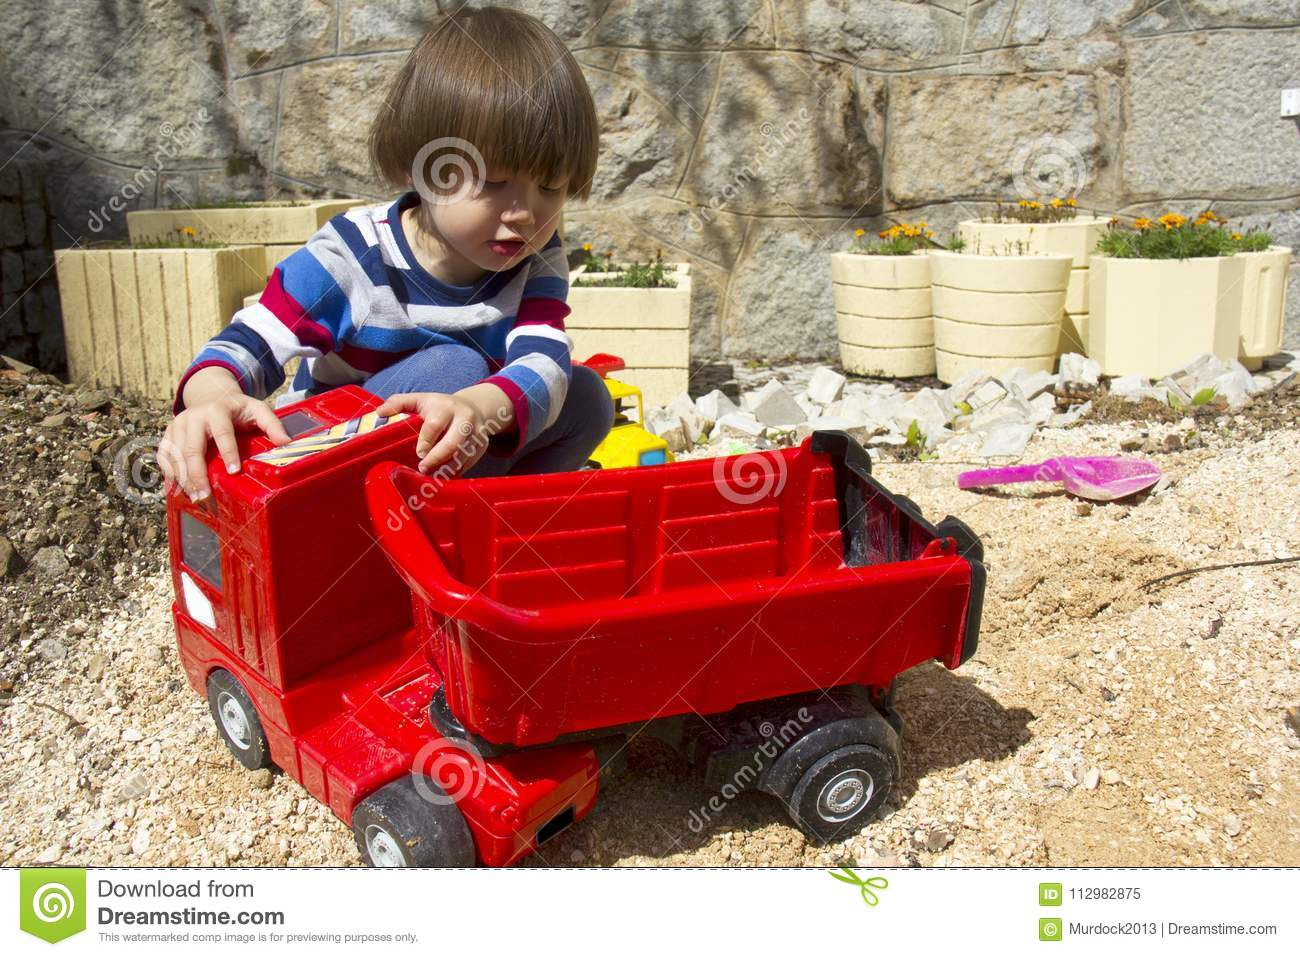 Little boy playing with toy digger and dumper truck.